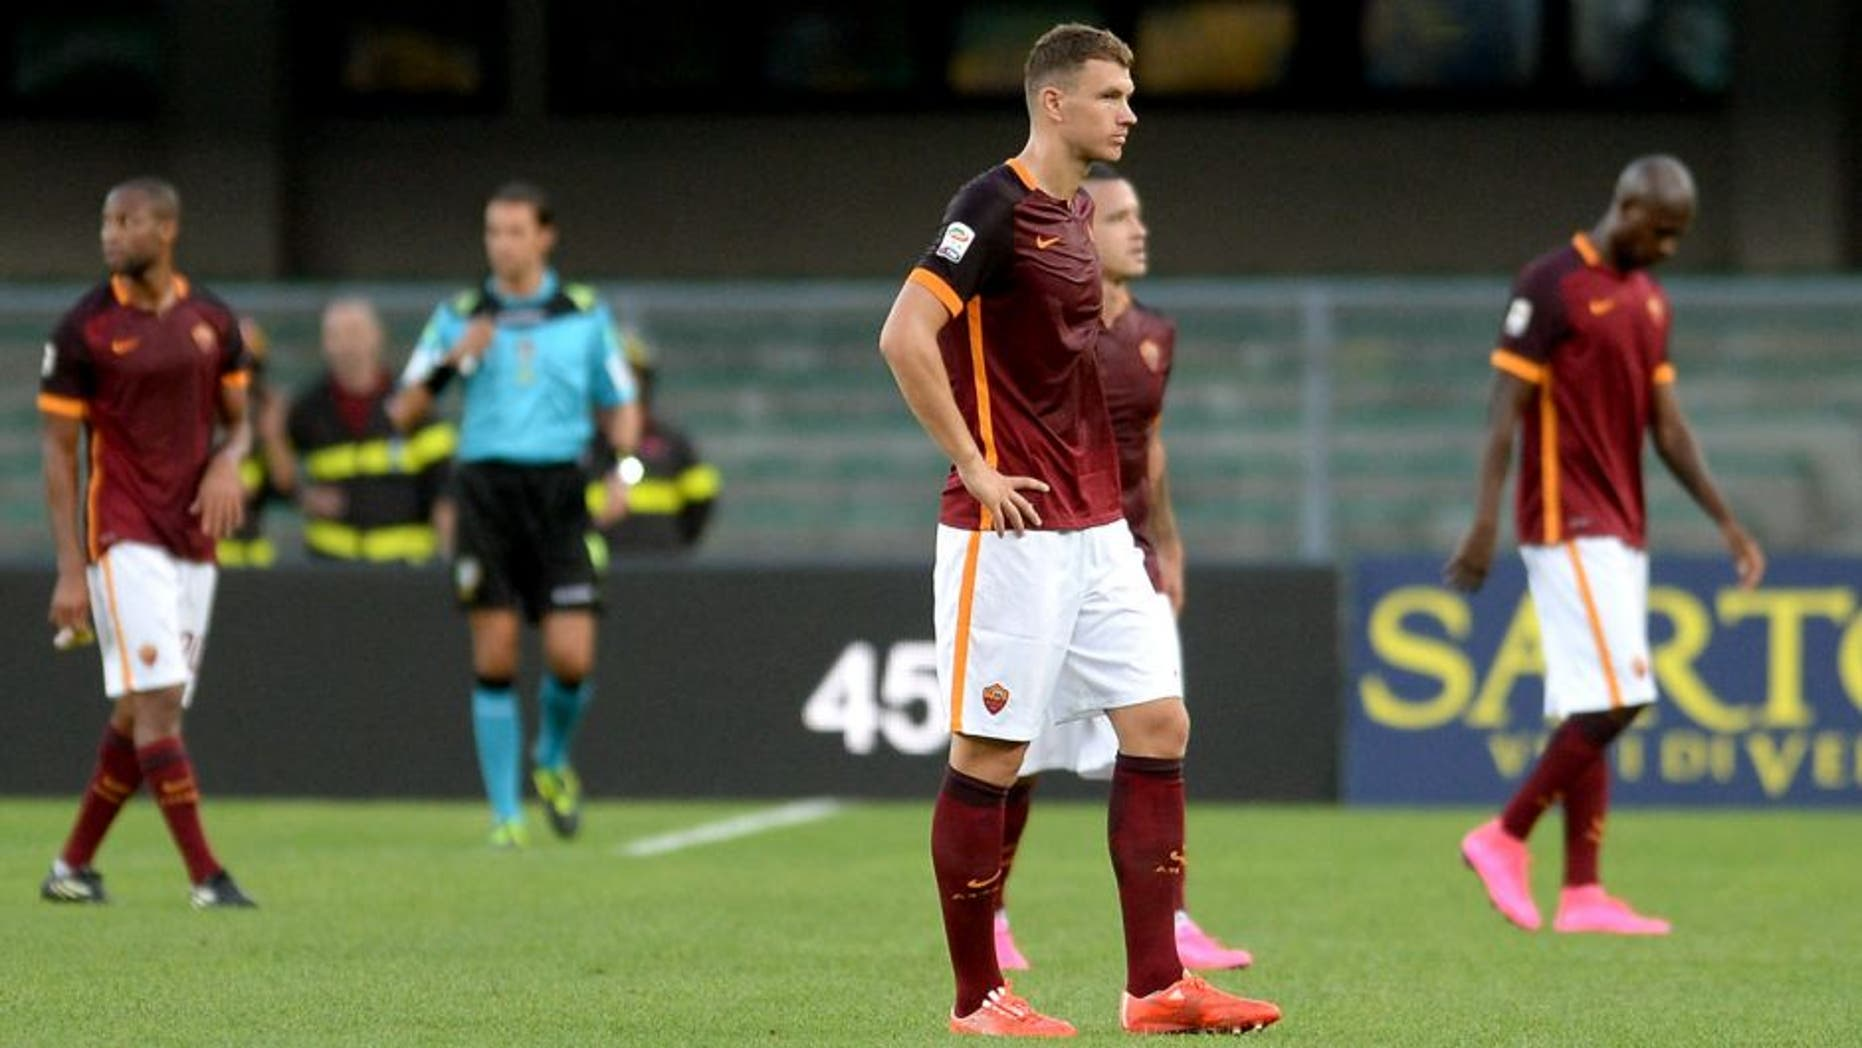 VERONA, ITALY - AUGUST 22: AS Roma players show their dejection after the Serie A match between Hellas Verona FC and AS Roma at Stadio Marc'Antonio Bentegodi on August 22, 2015 in Verona, Italy. (Photo by Dino Panato/Getty Images)